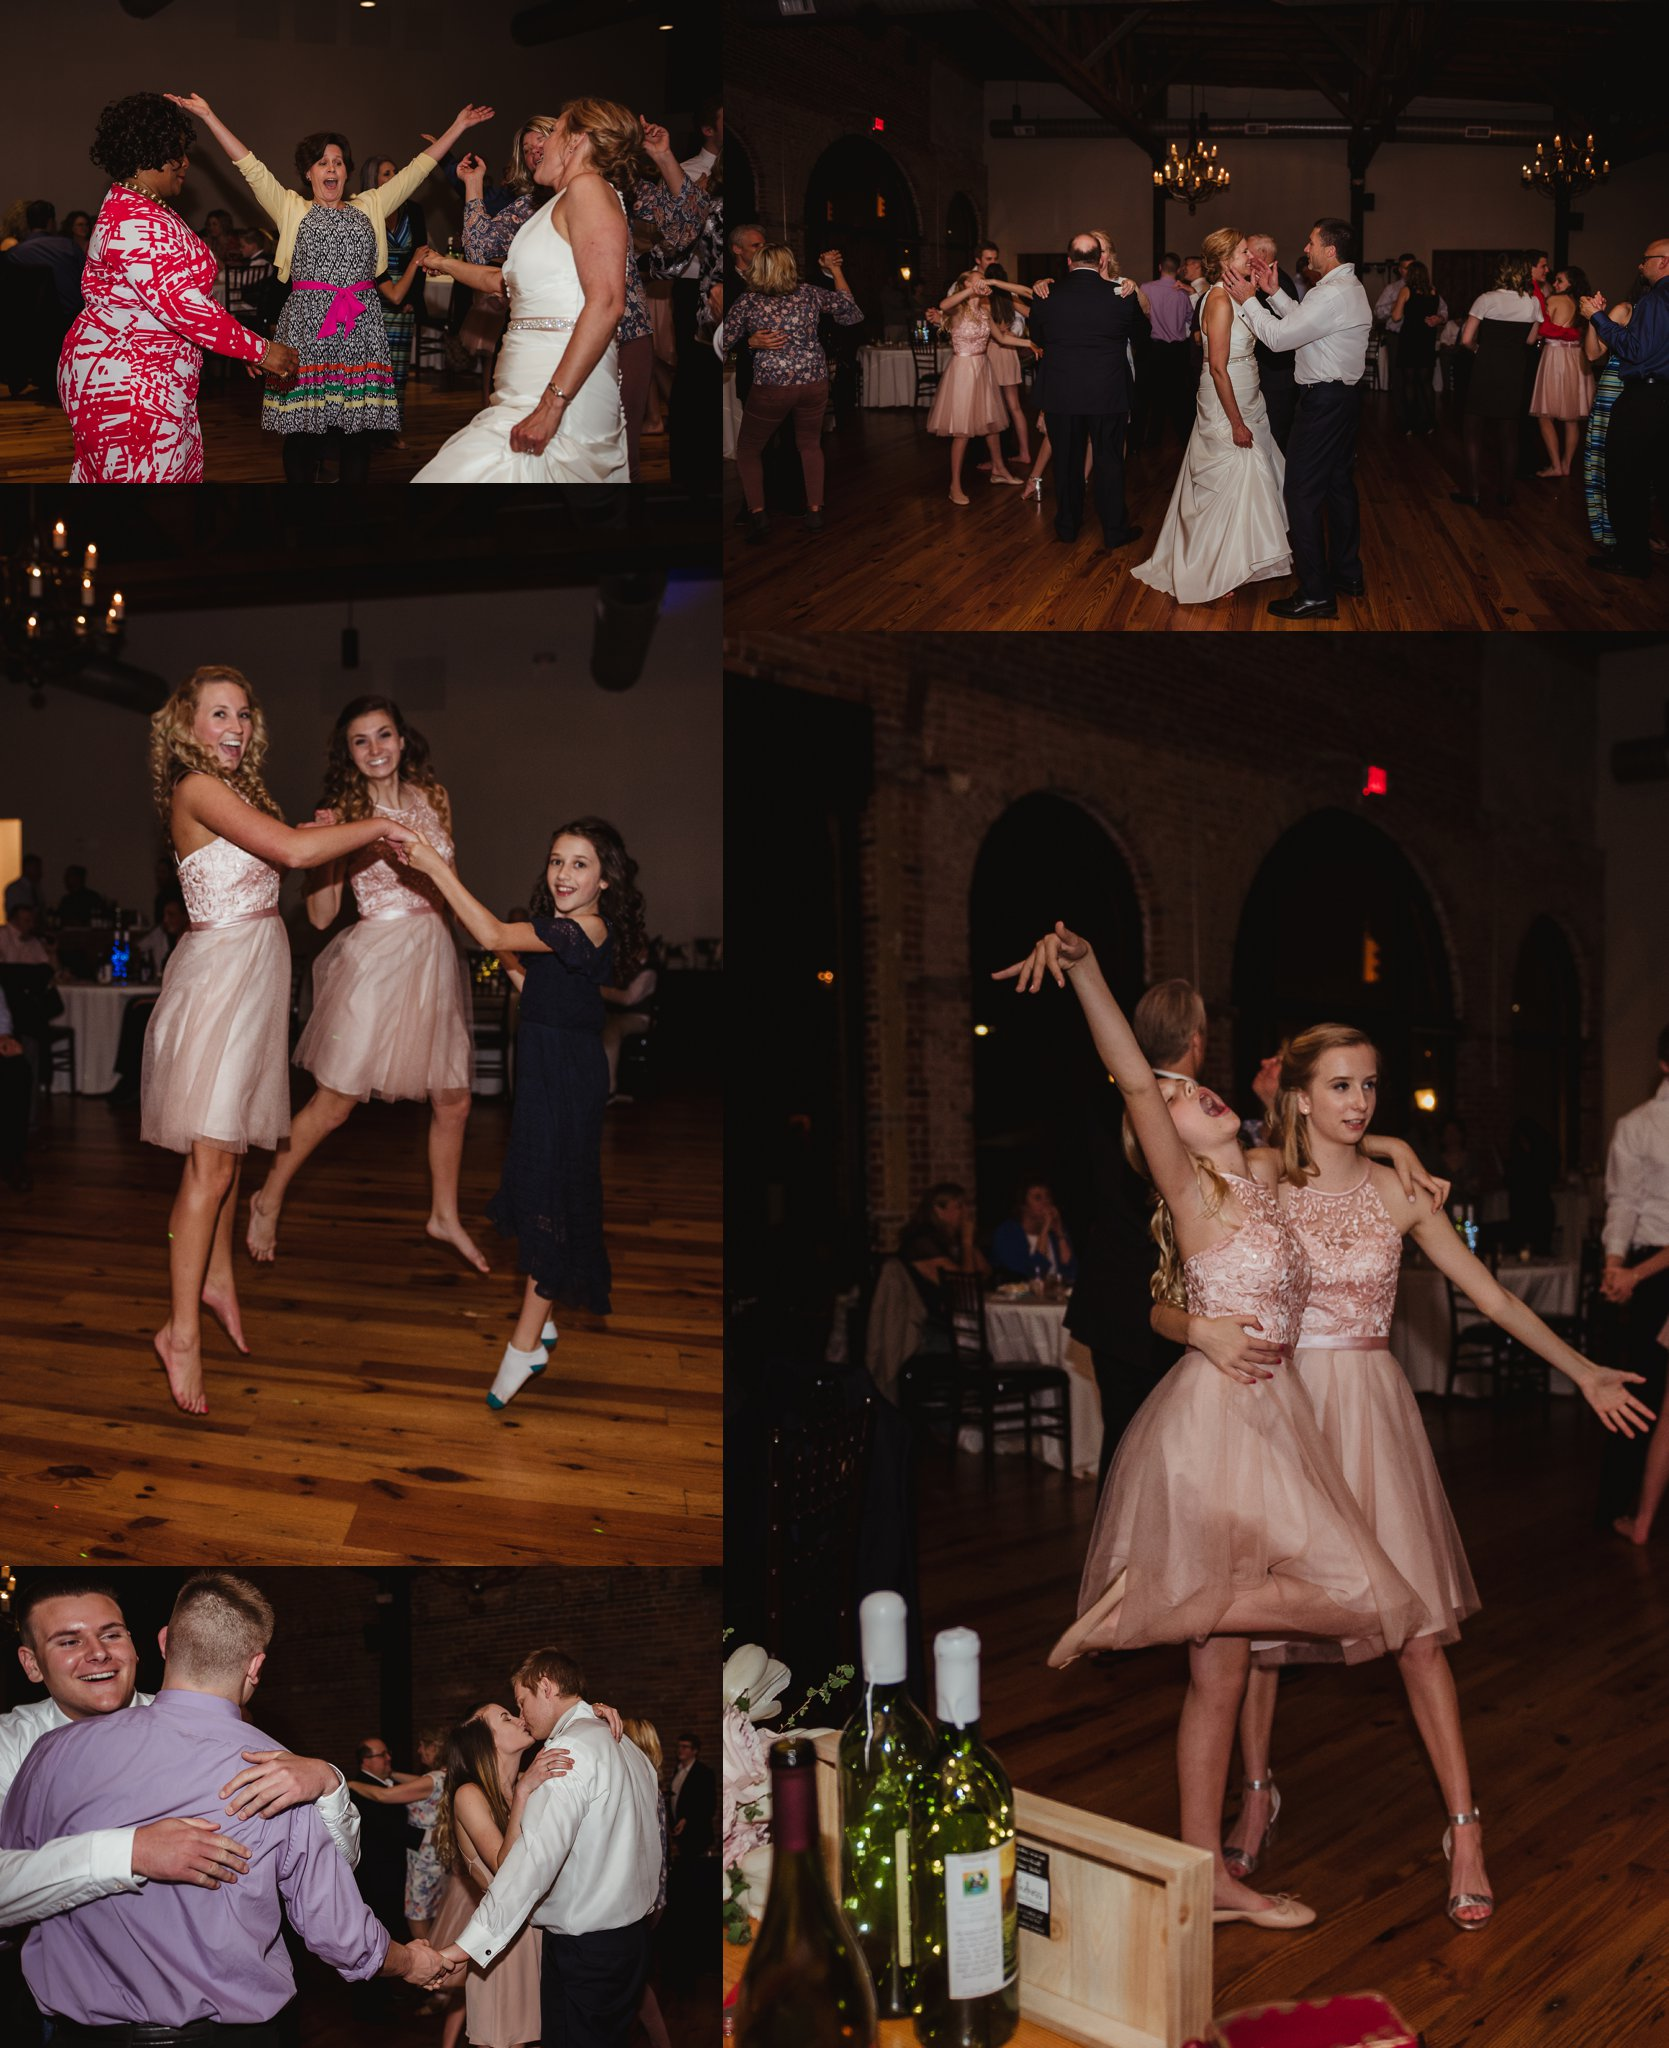 Guests enjoy dancing and jumping for the camera with Rose Trail Images at the wedding reception at Cross and Main in Youngsville, NC.